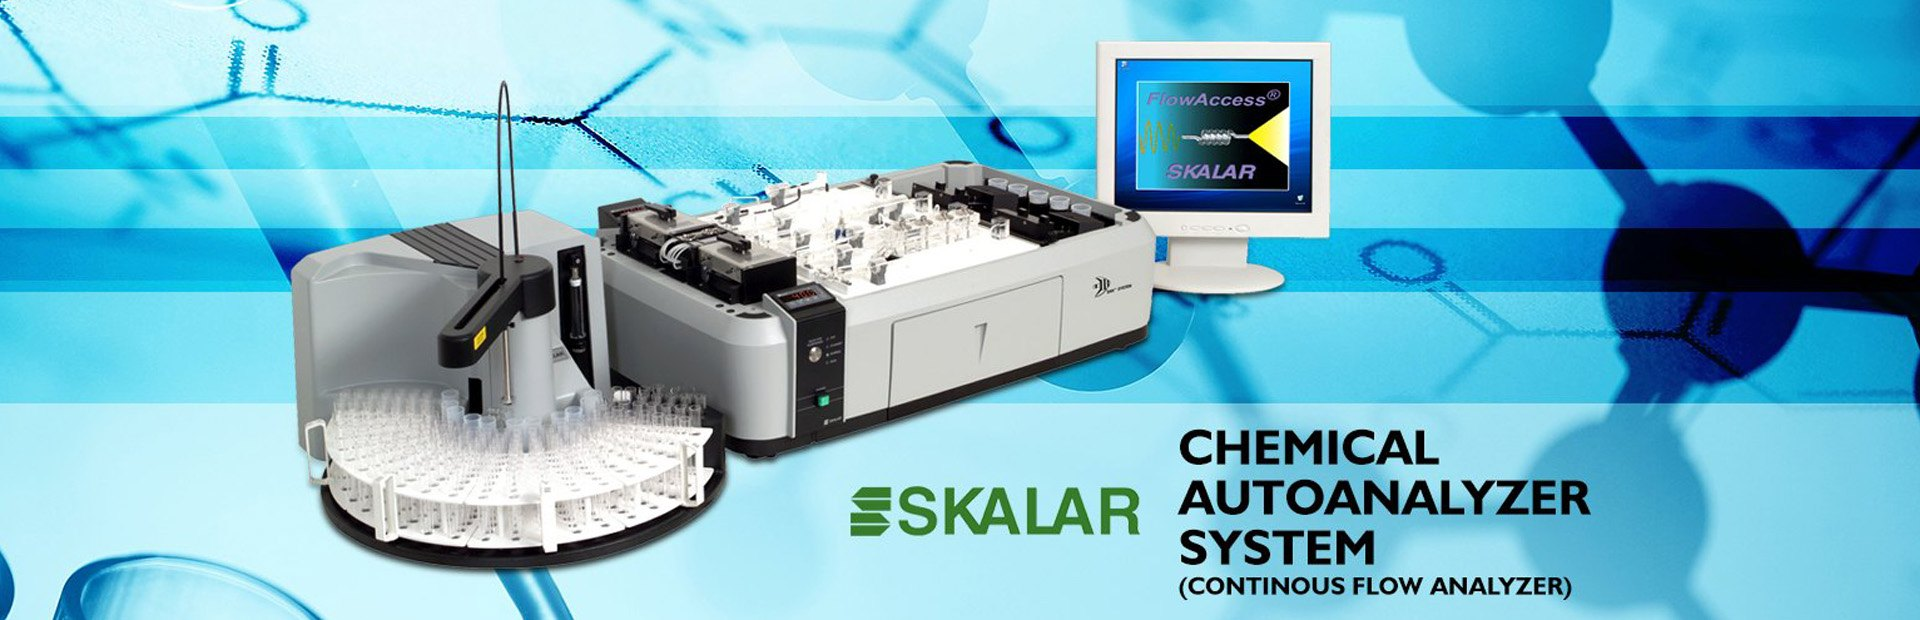 CHEMICAL AUTOANALYZER SYSTEMS